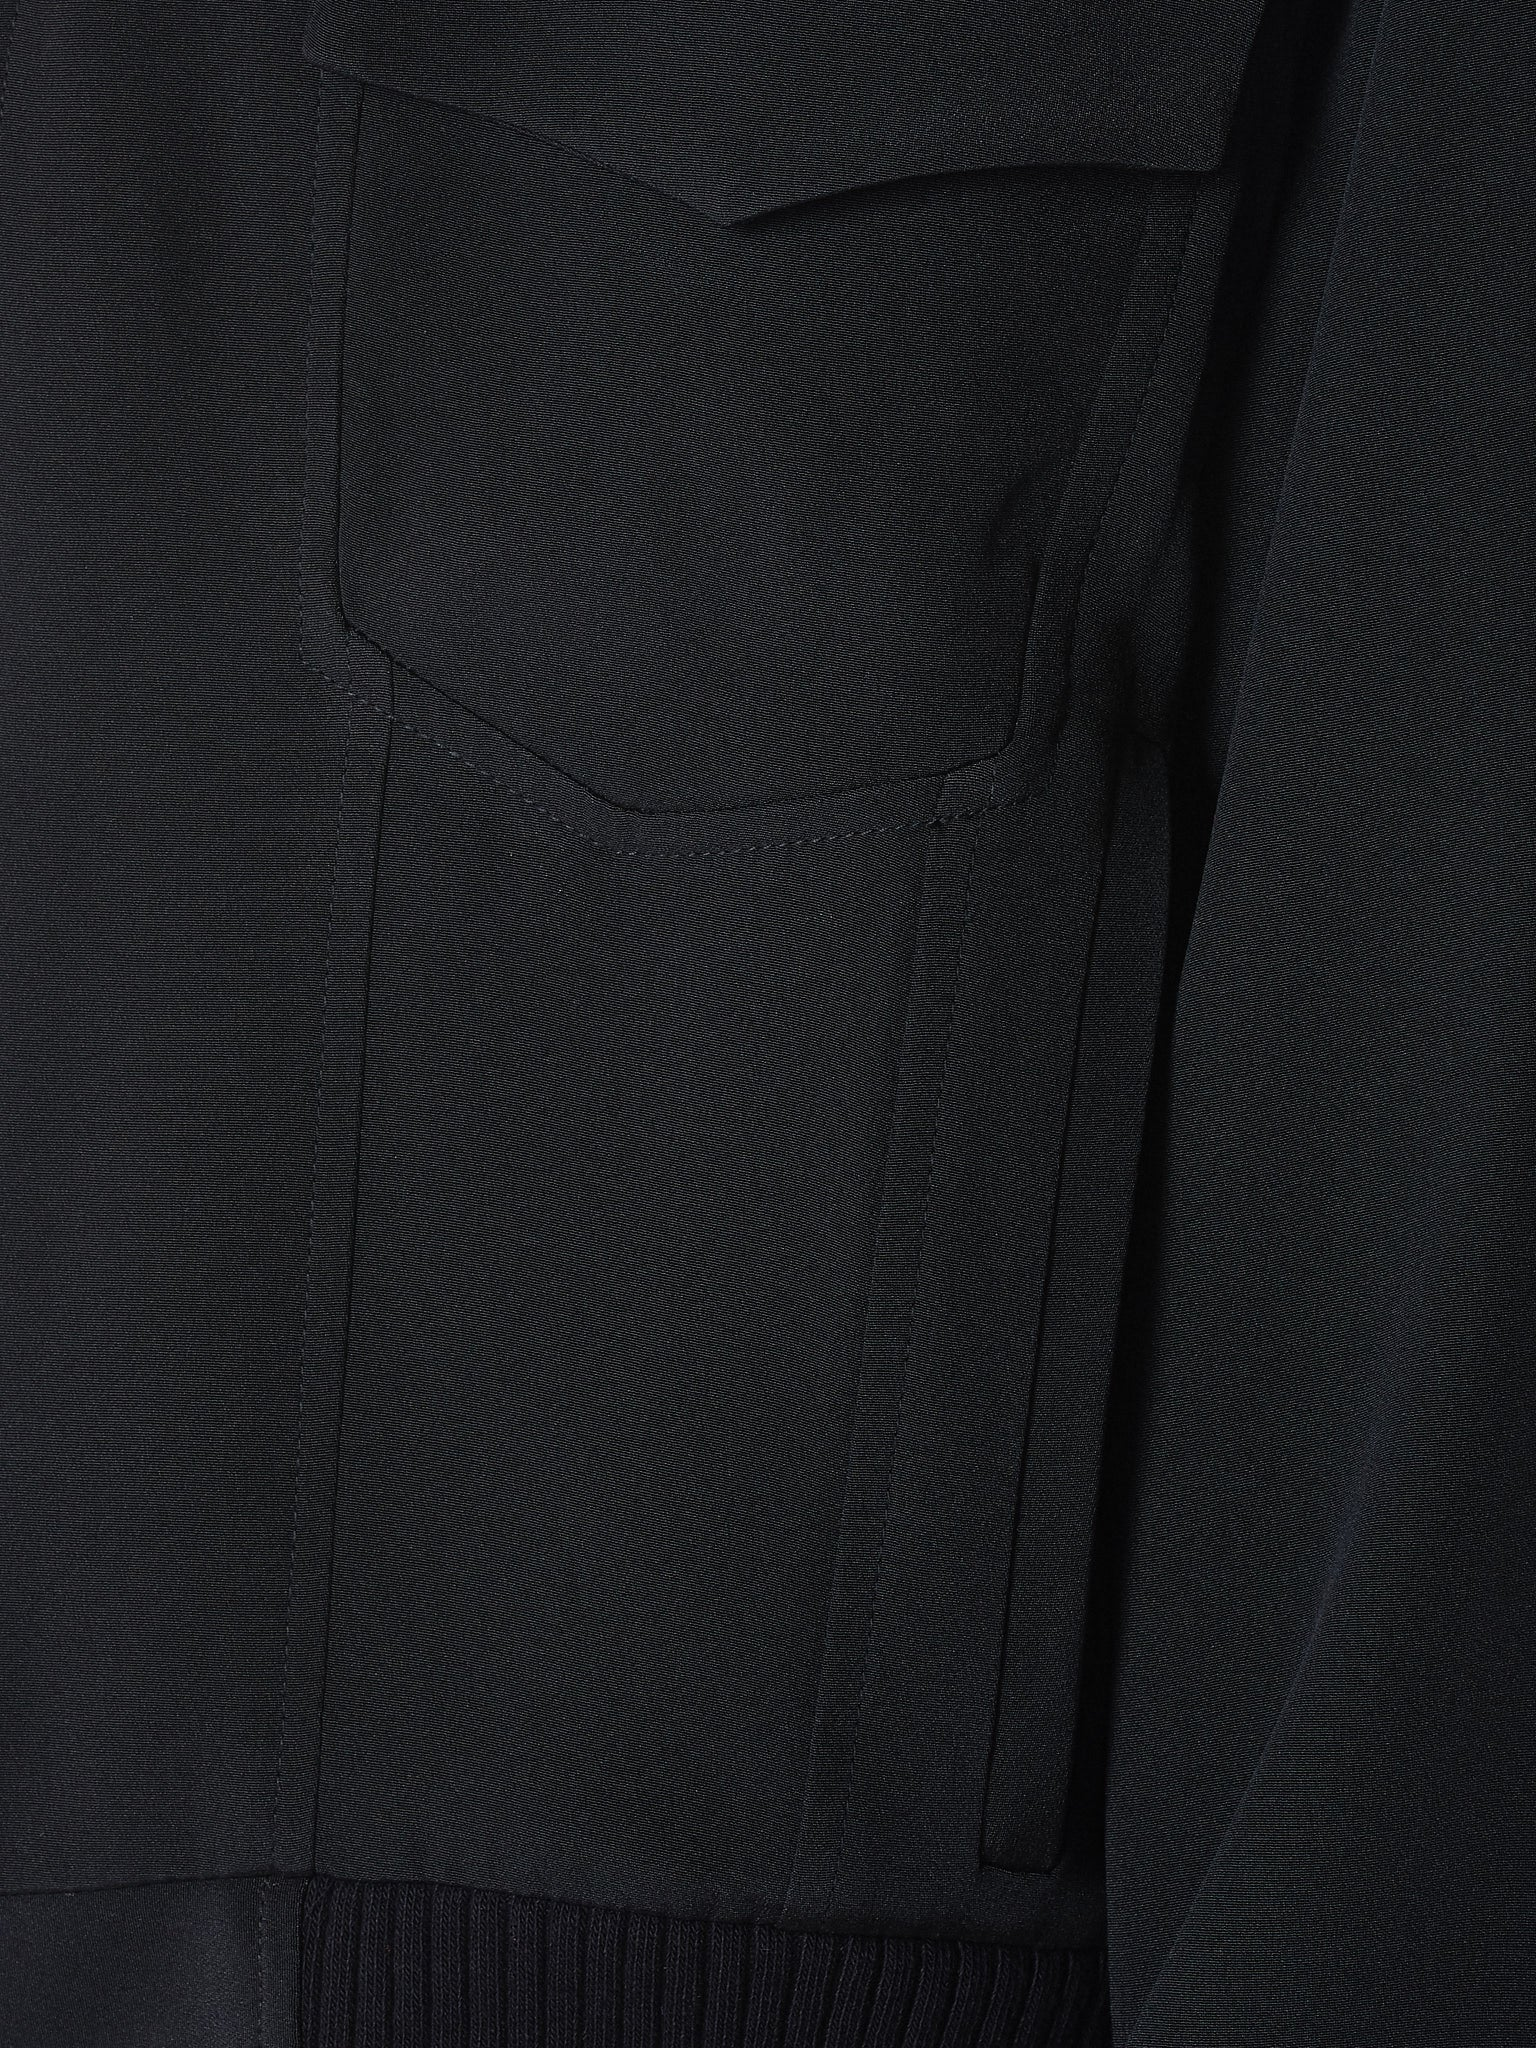 Nahmias Silk Jacket - Hlorenzo Detail 4